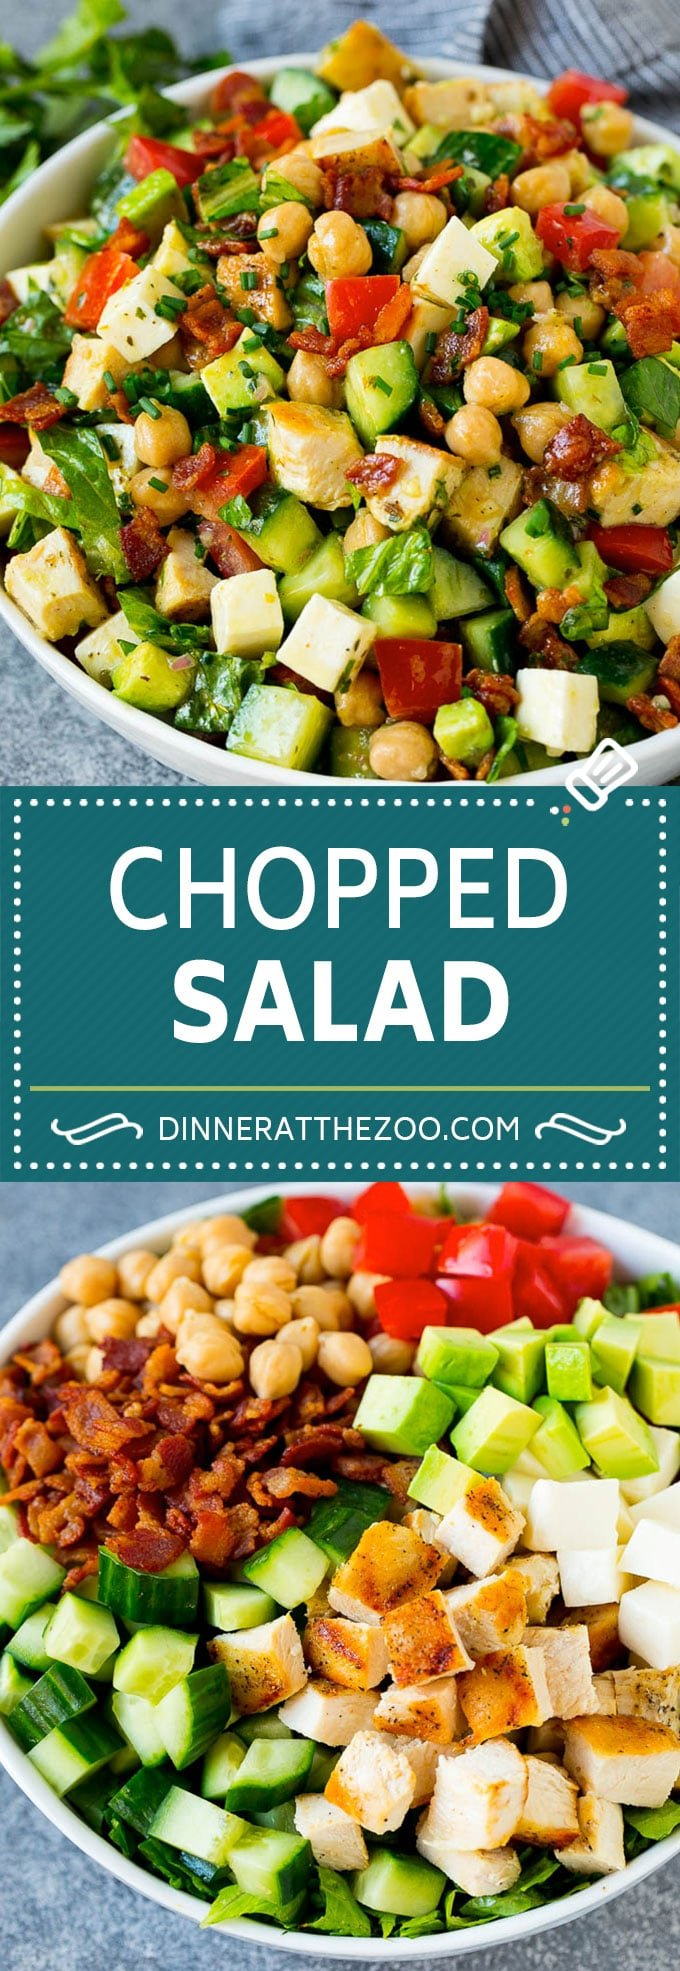 Chopped Salad Recipe | Chicken Salad | Avocado Salad #salad #chicken #avocado #bacon #glutenfree #dinner #dinneratthezoo #lunch